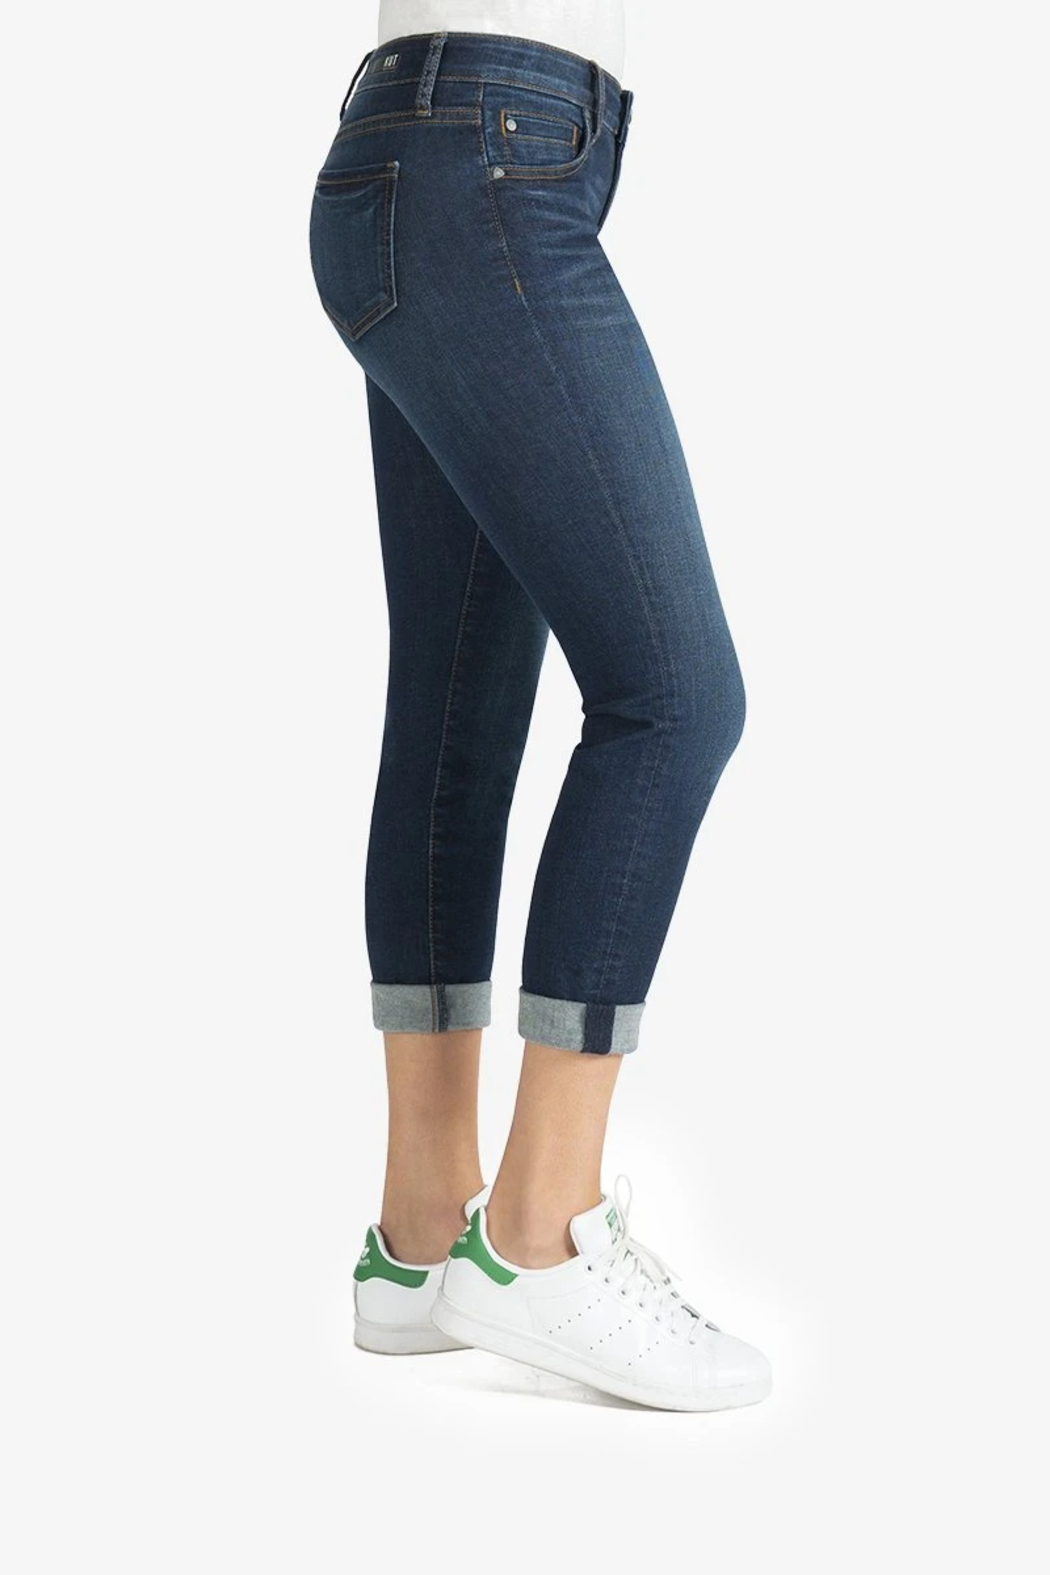 Kut from the Kloth Catherine Boyfriend Jeans - Front Full Image